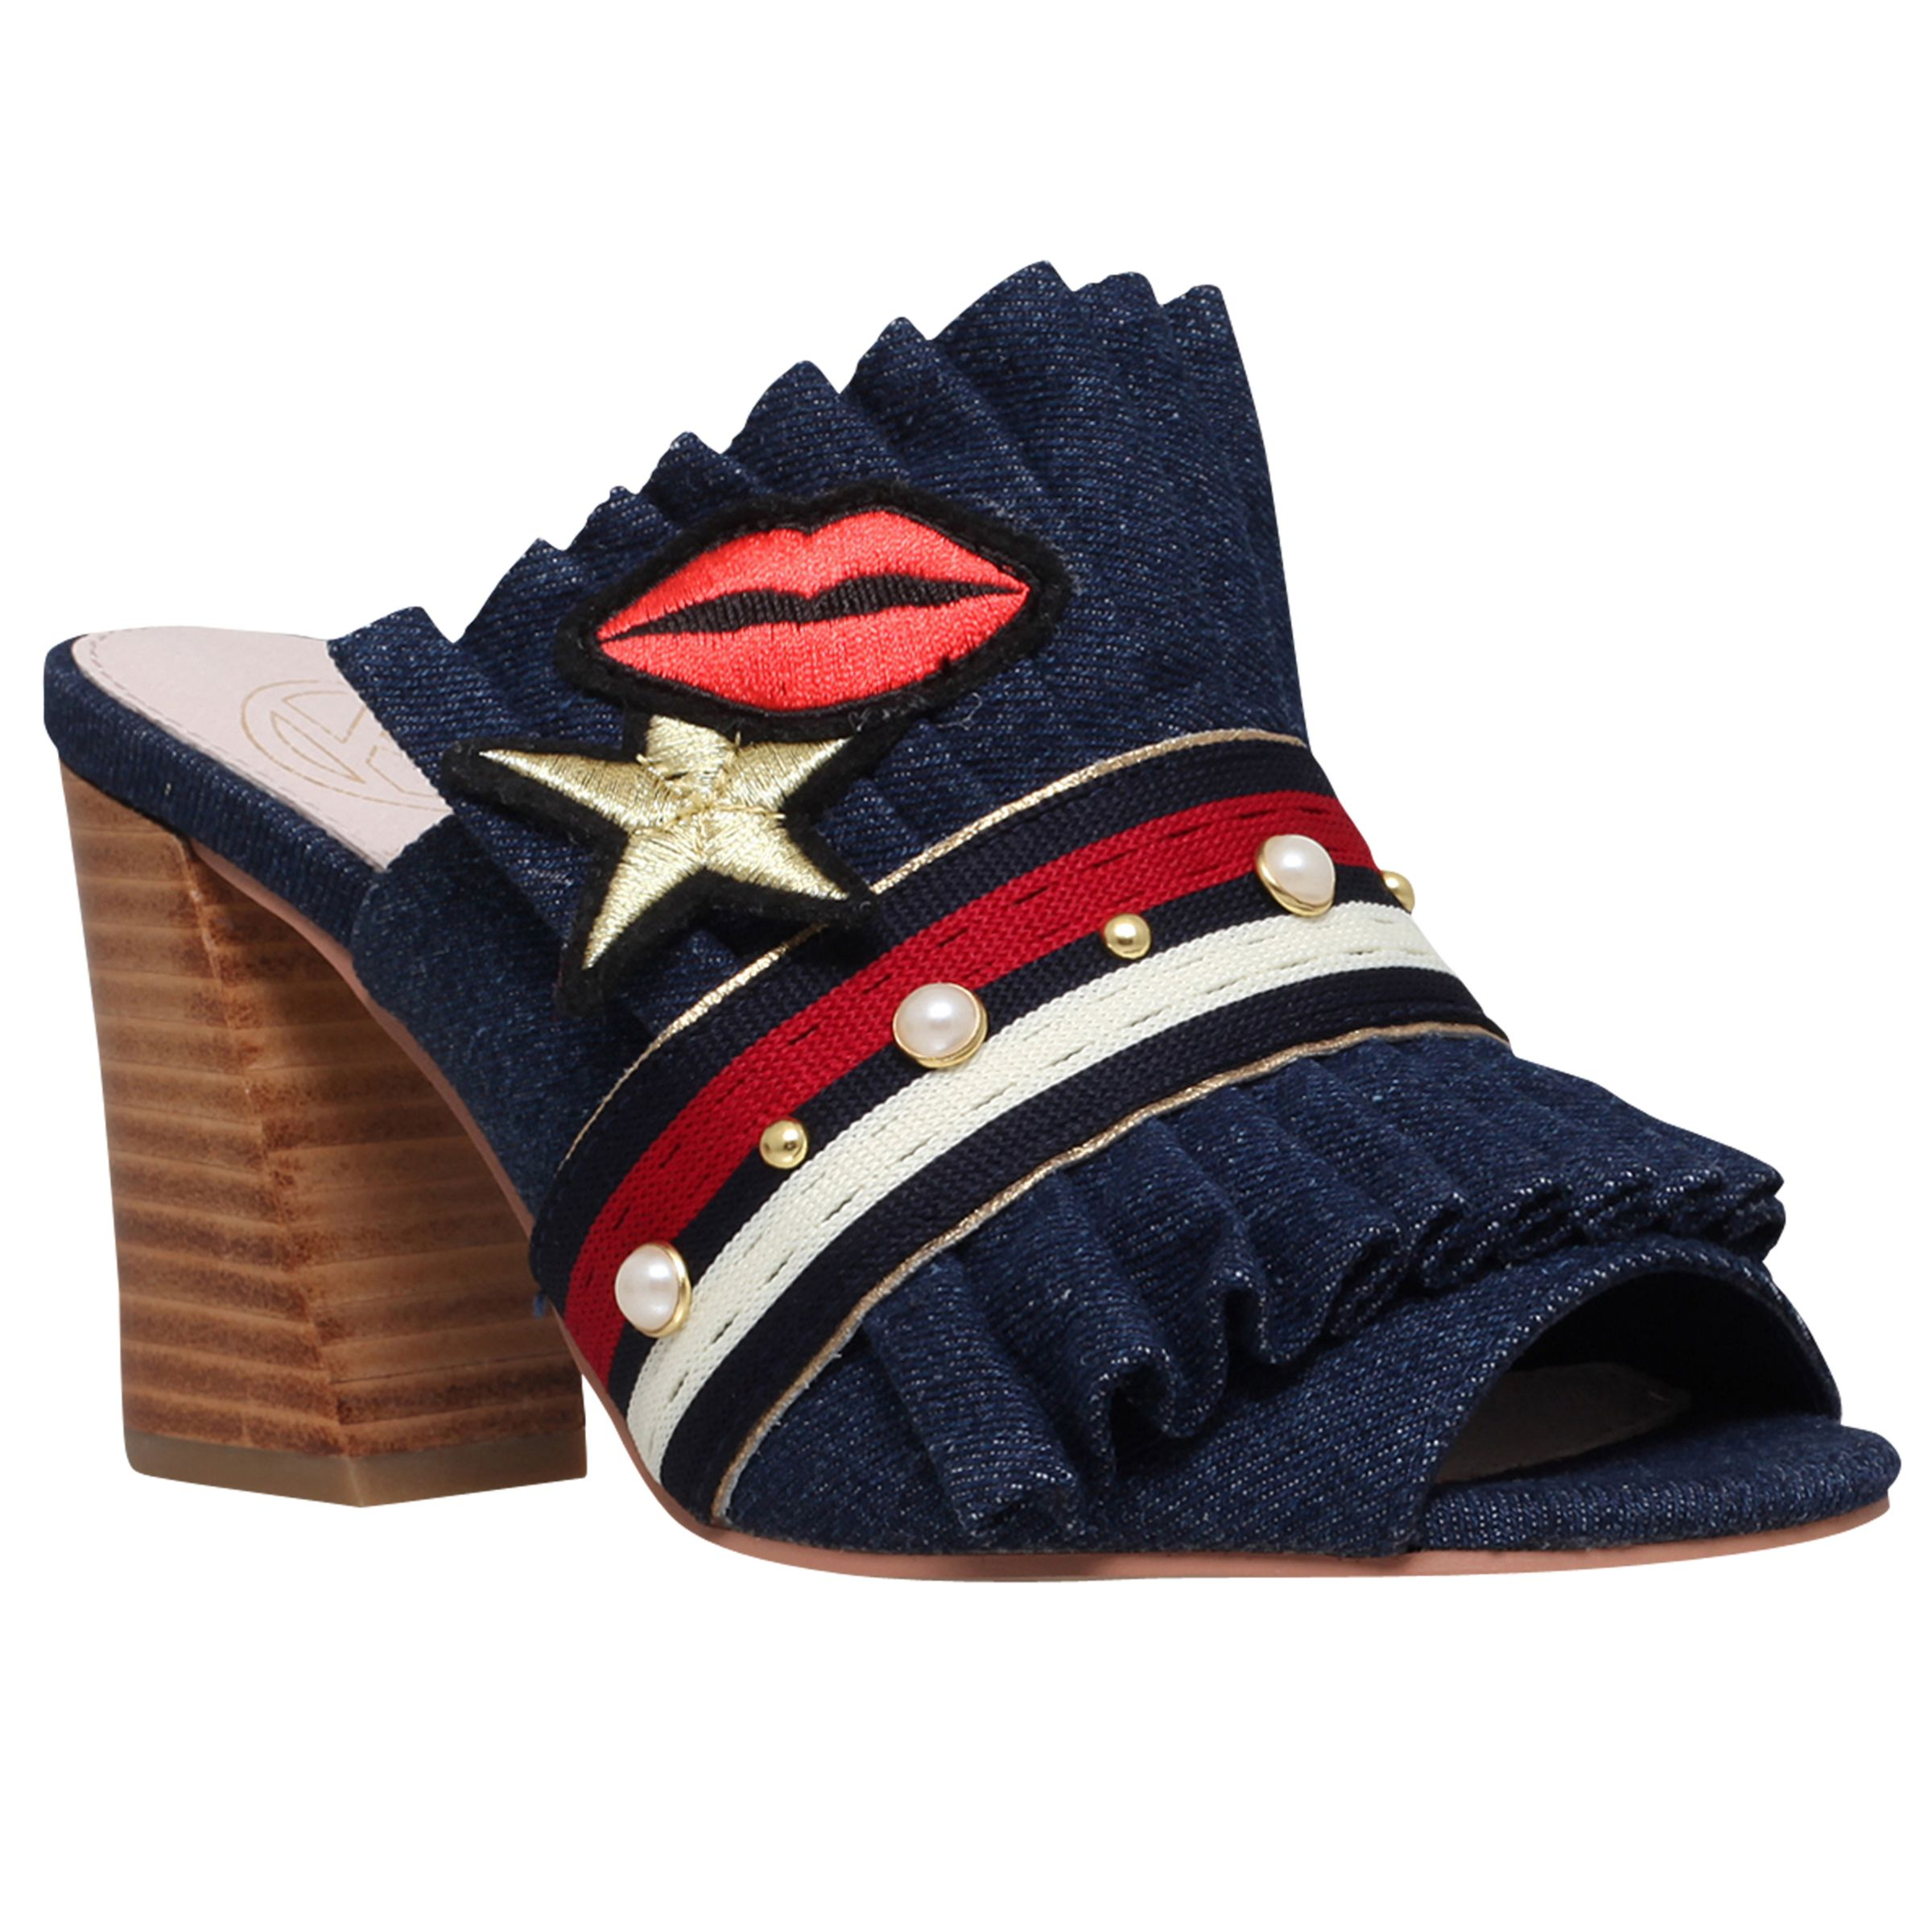 KG by Kurt Geiger KG by Kurt Geiger Mistres Block Heeled Mule Sandals, Denim